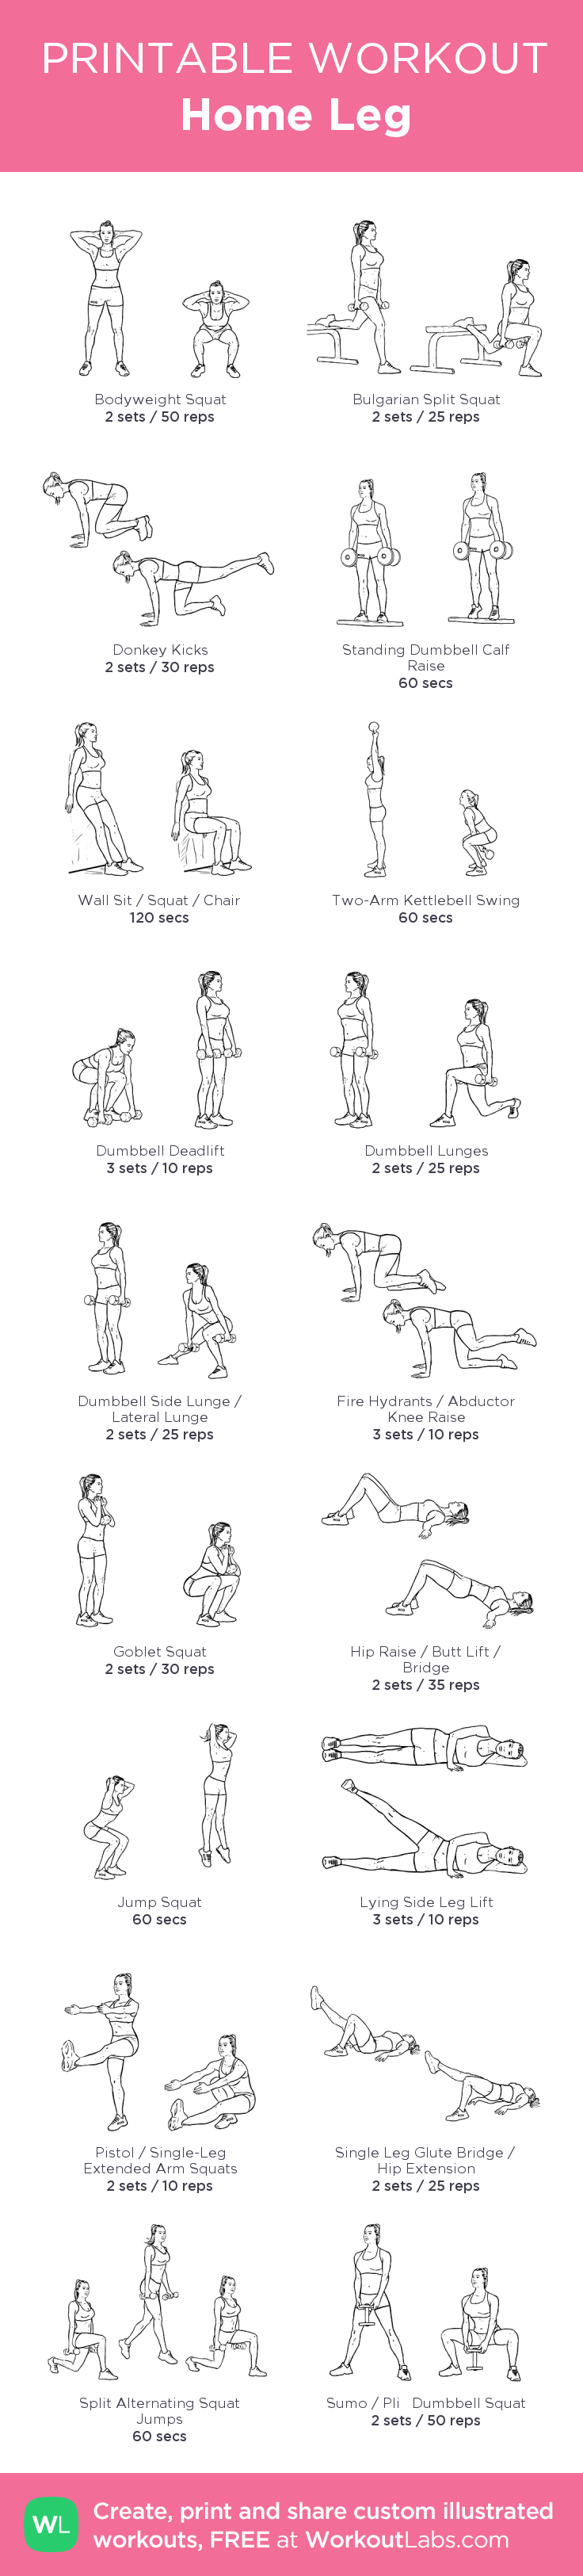 Home Leg: my visual workout created at WorkoutLabs.com • Click through to customize and download as a FREE PDF! #customworkout